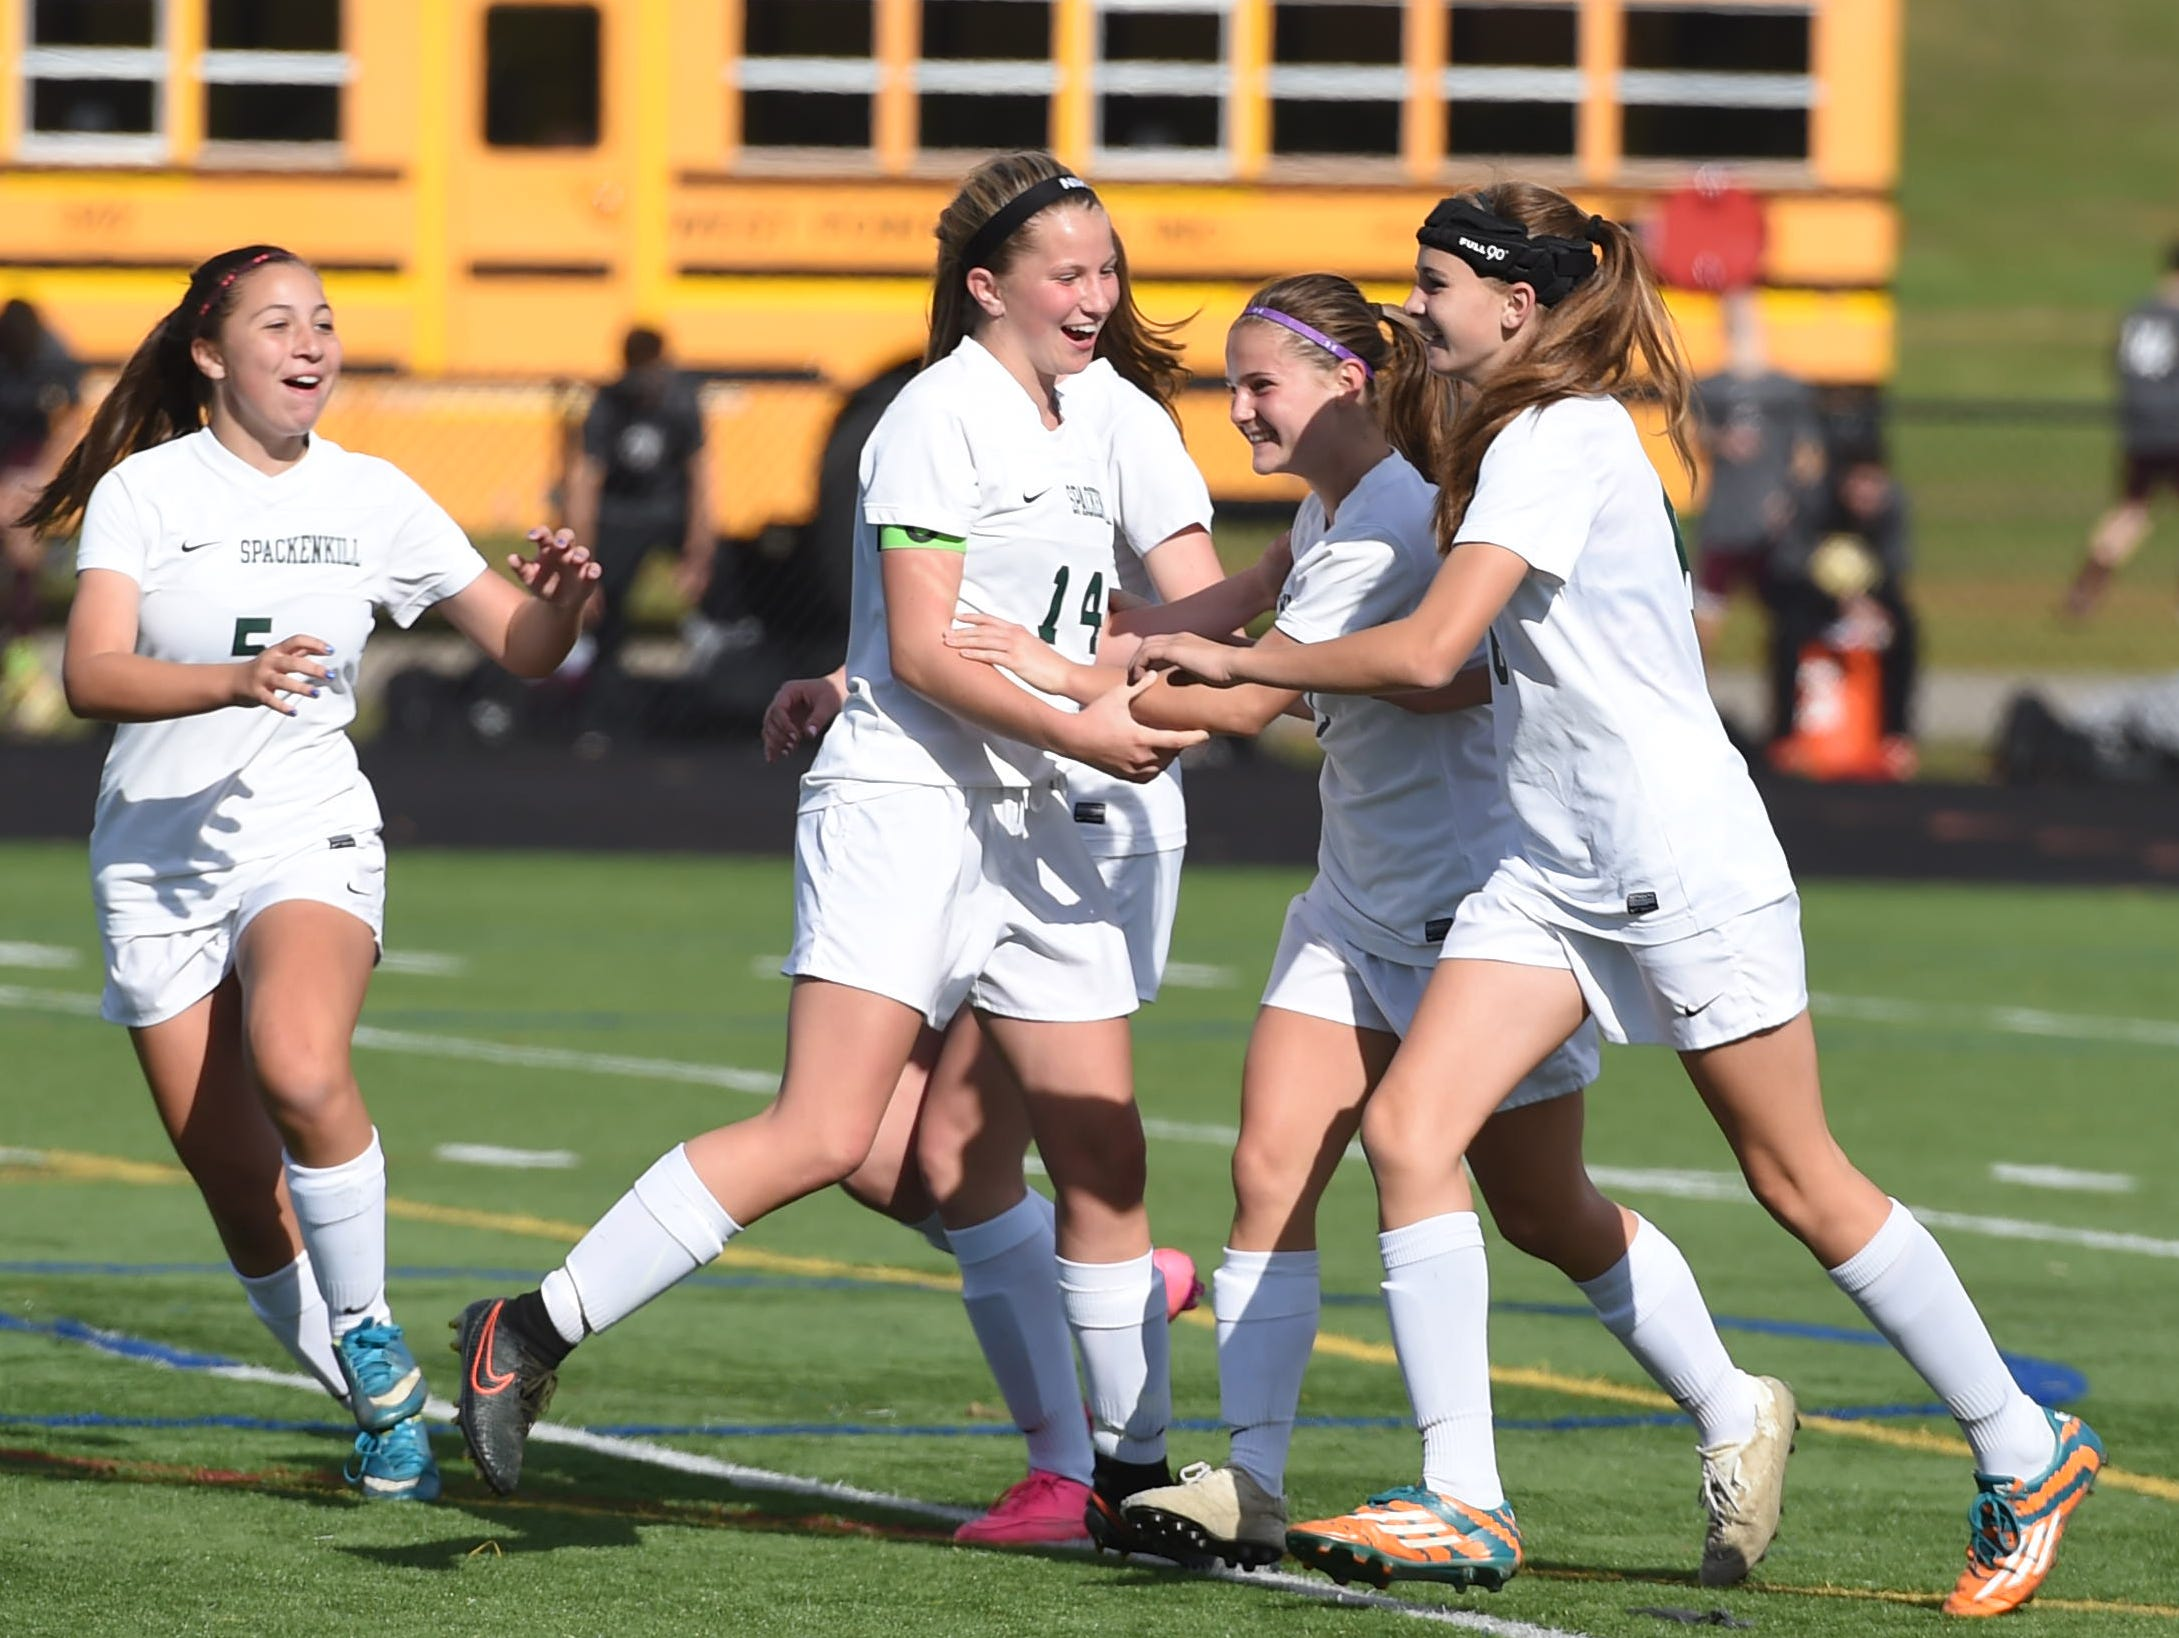 From left, Spackenkill's Caitlin Speranza, Katherine Lillis, Maria Barefoot, and Kaitlin Kilpert celebrate the goal Barefoot got on Rhinebeck during the Section 9 Class C final held in Marlboro on Saturday.